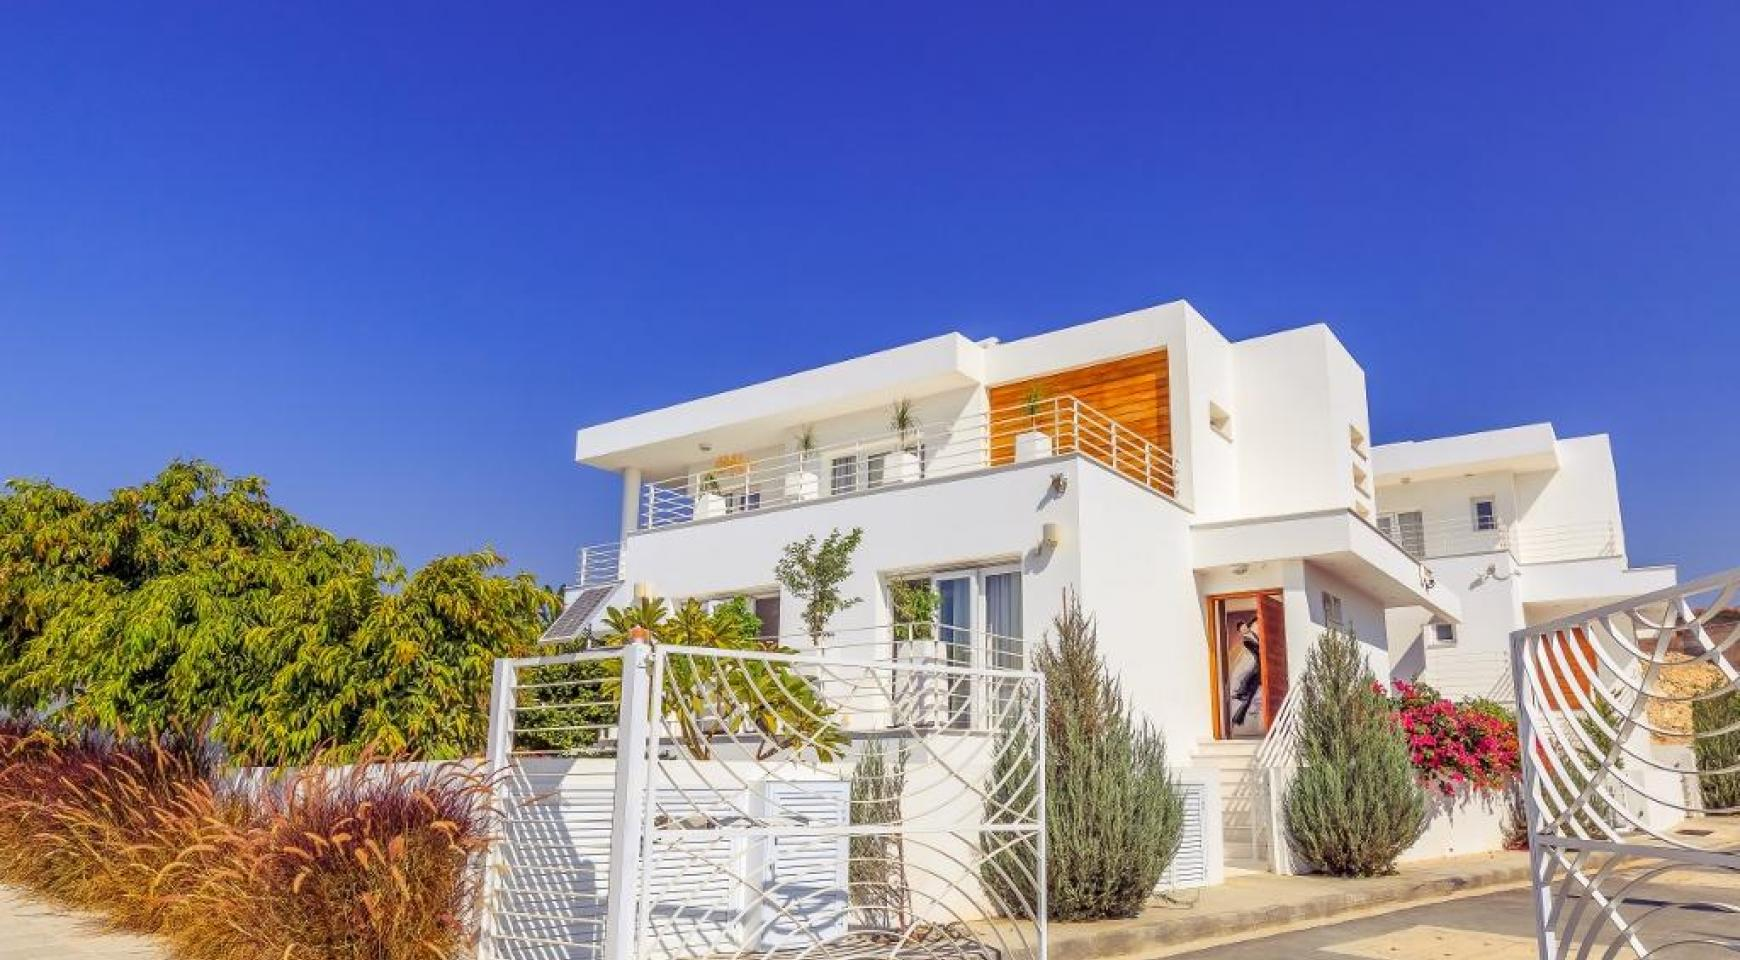 Contemporary 4 Bedroom Villa with Sea Views in Agios Tychonas - 4